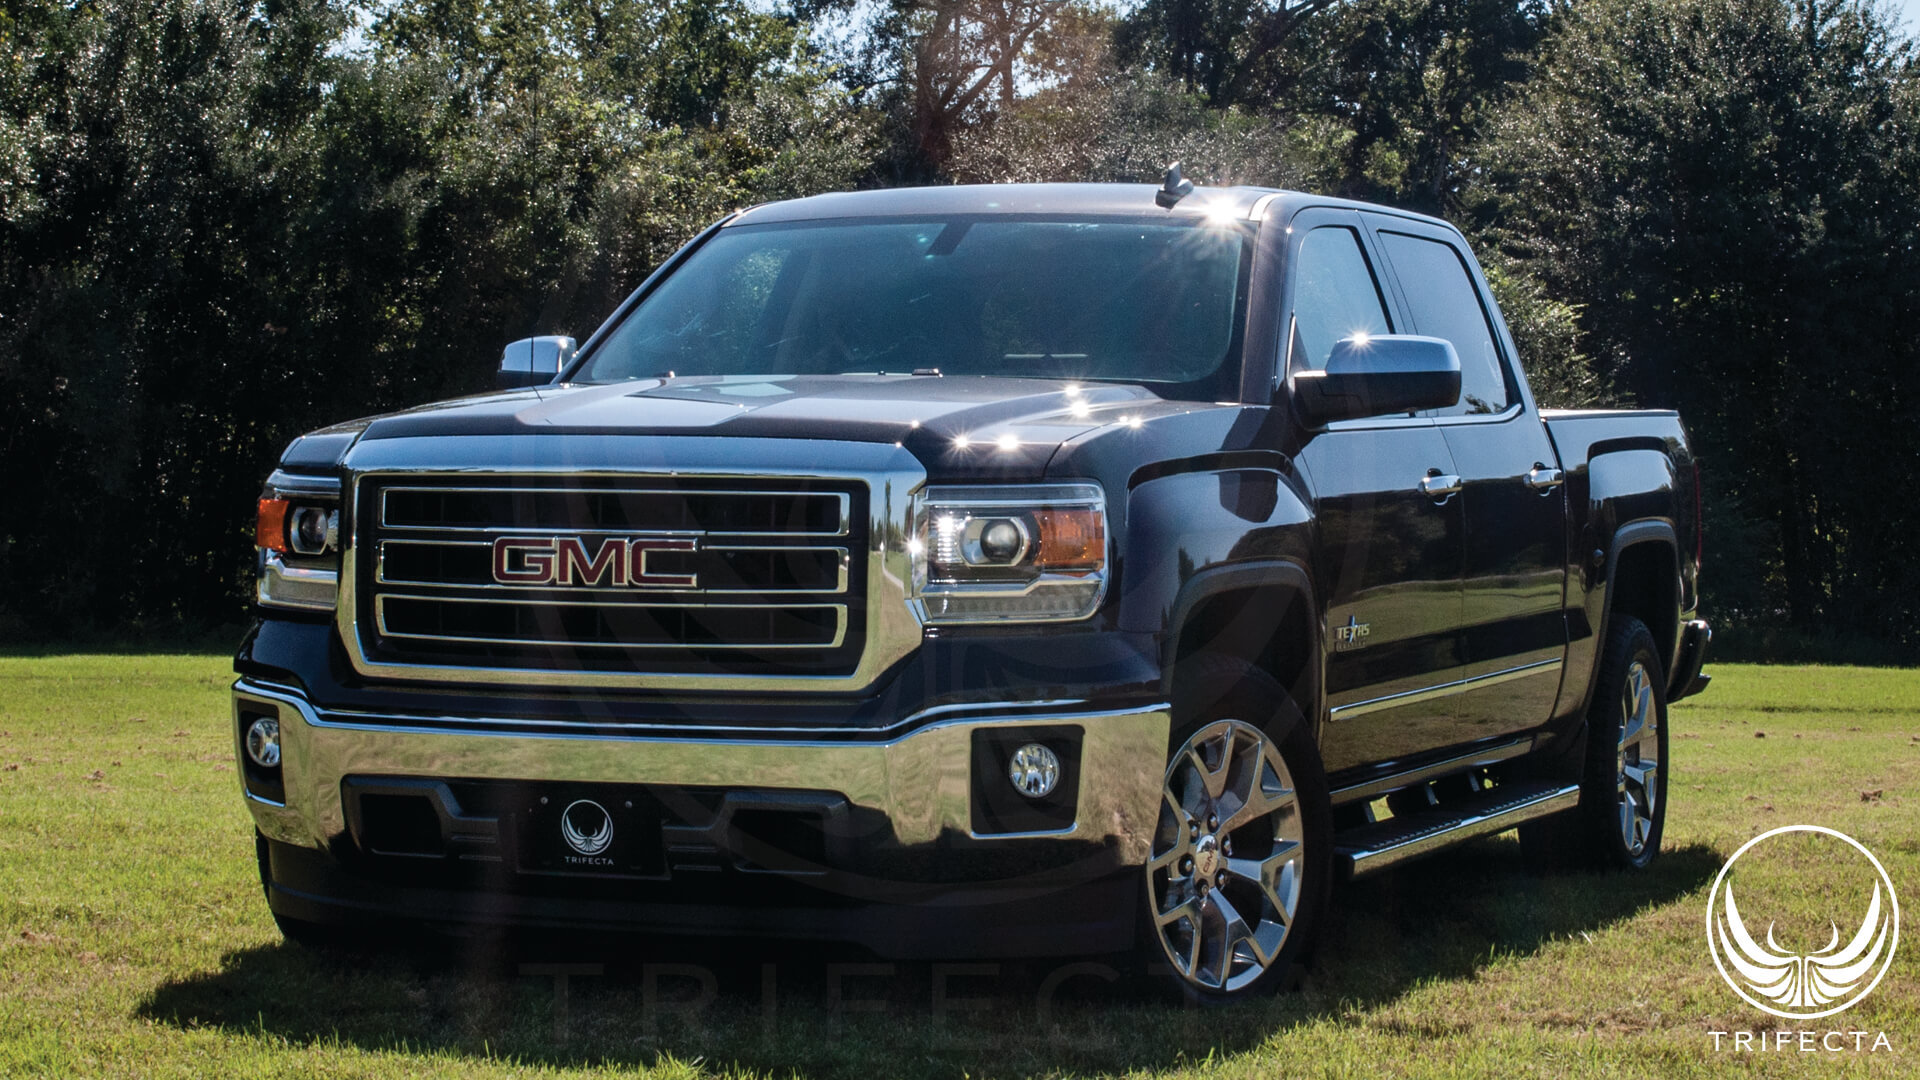 Product Review: 2014--2018+ GMC Sierra - 5.3L - Advantage+